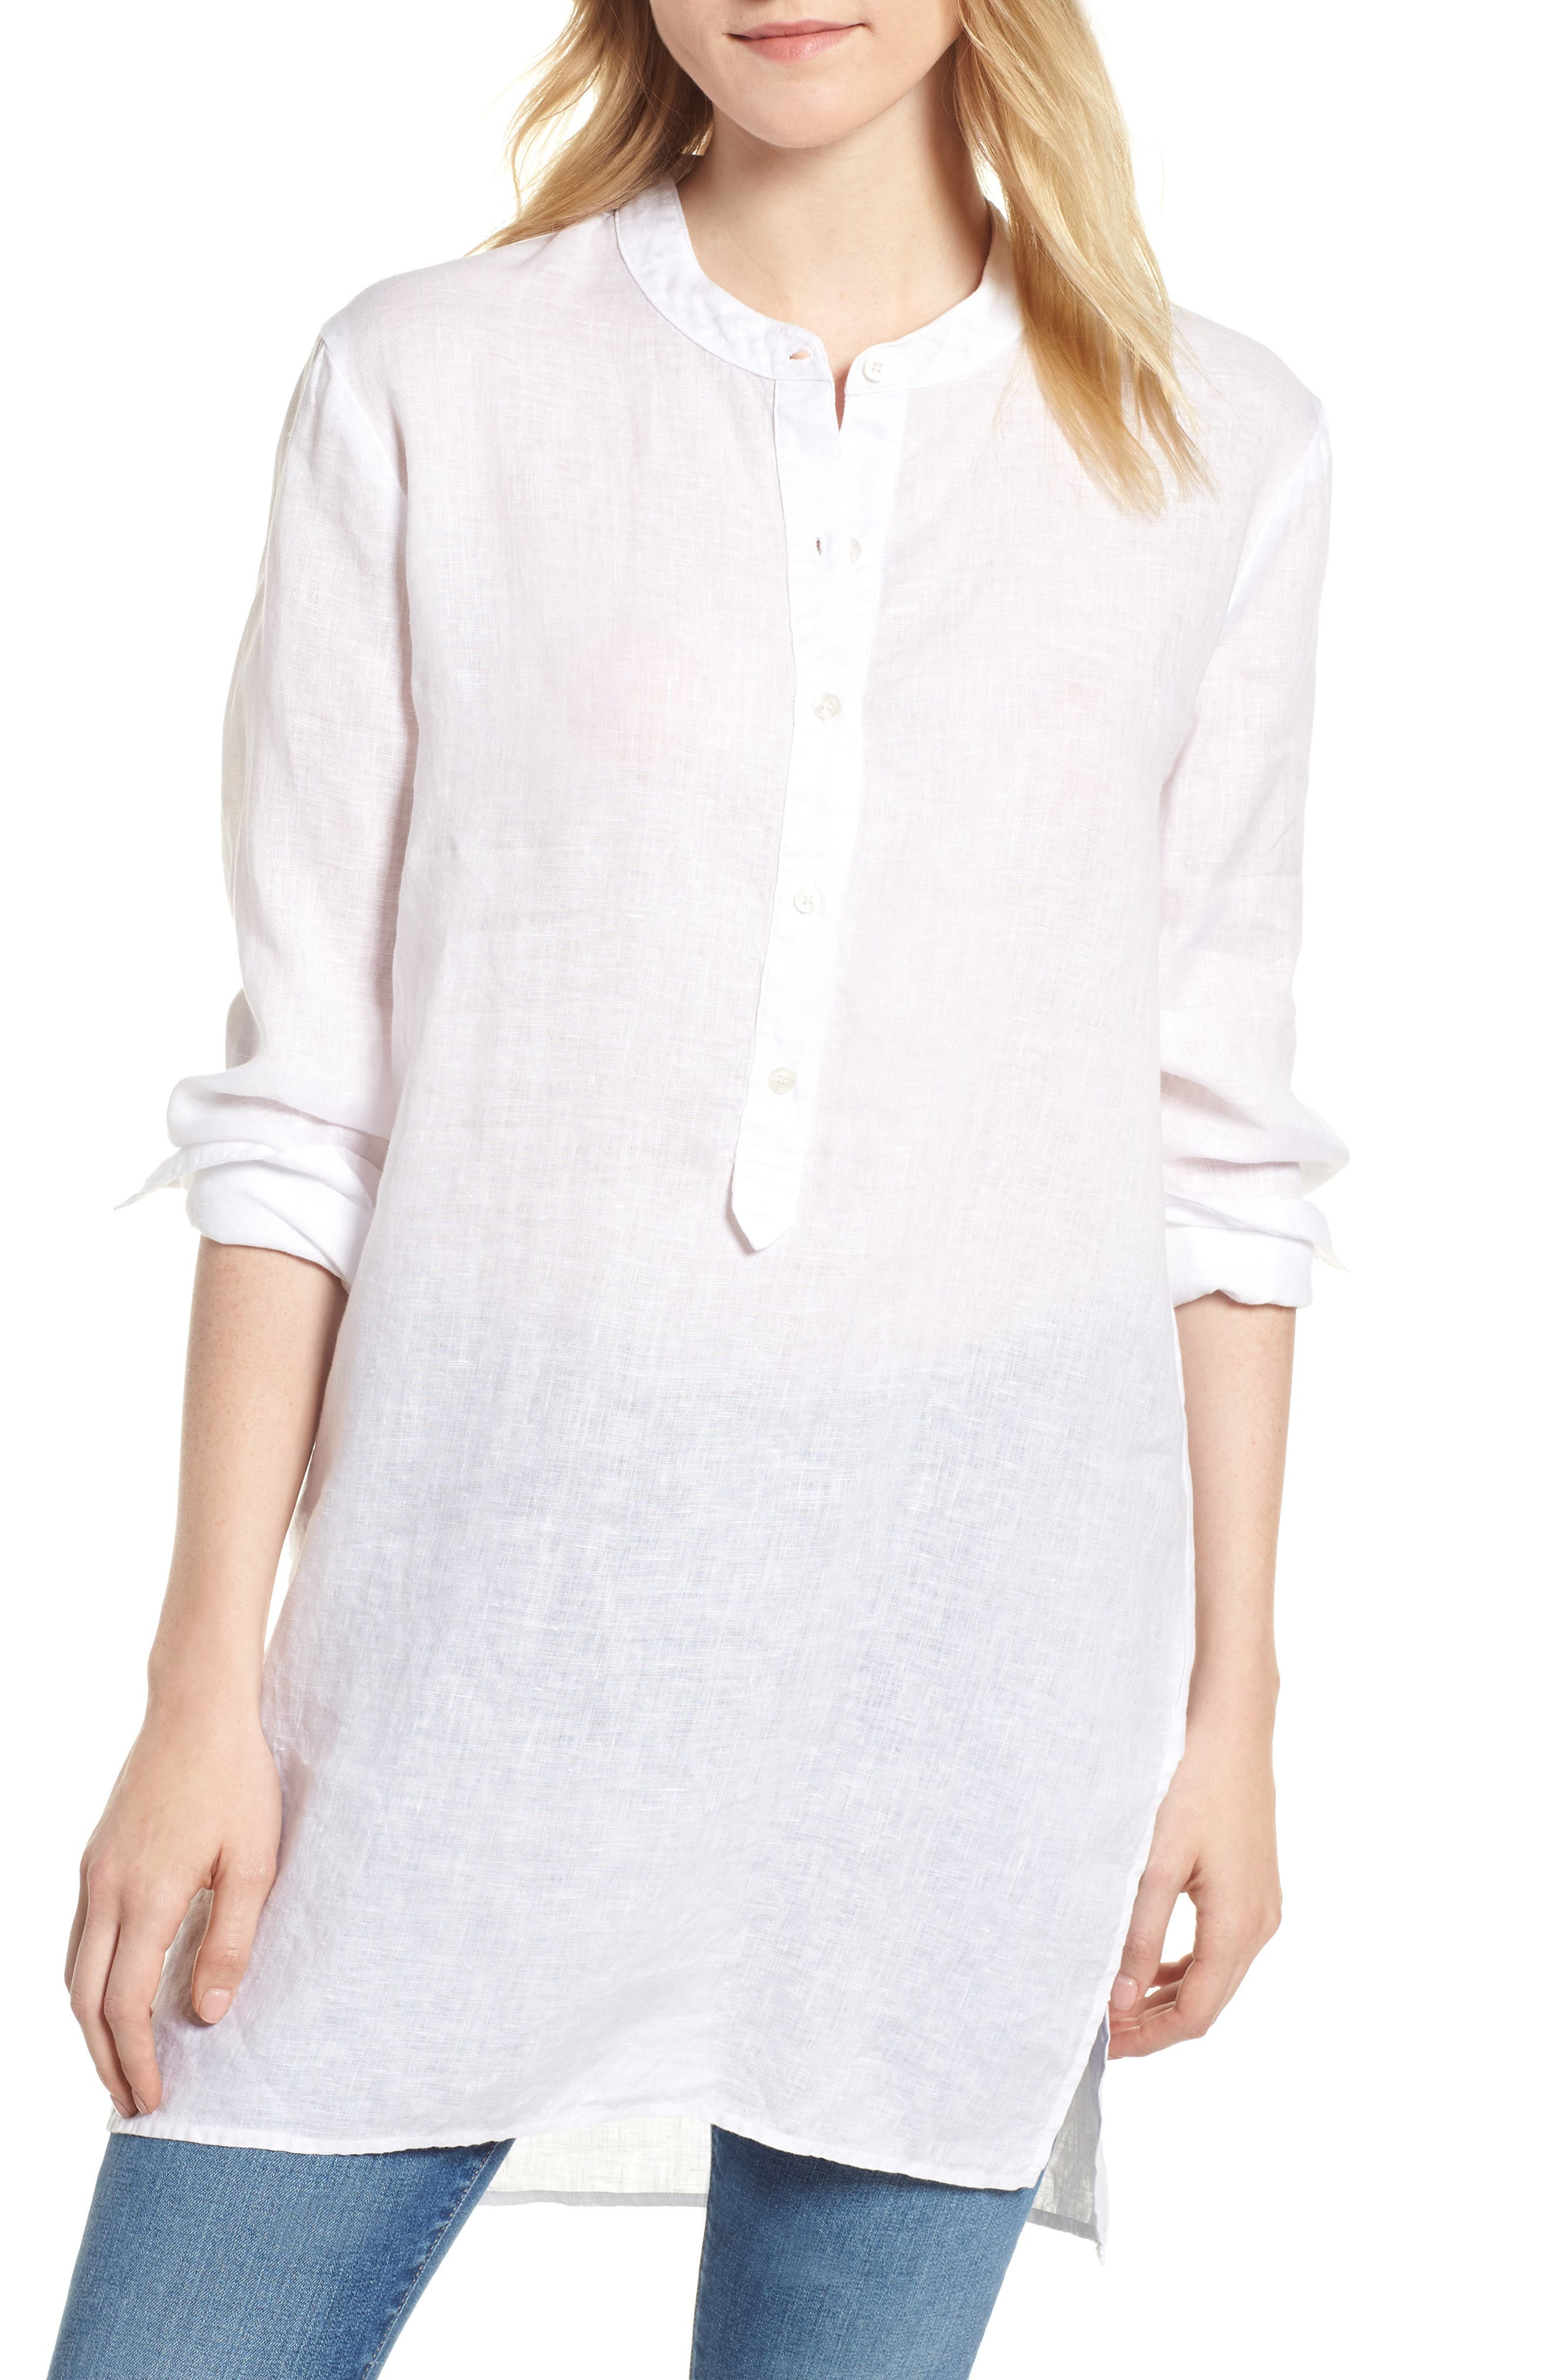 Shirting Tunic Top,                         Main,                         color, White